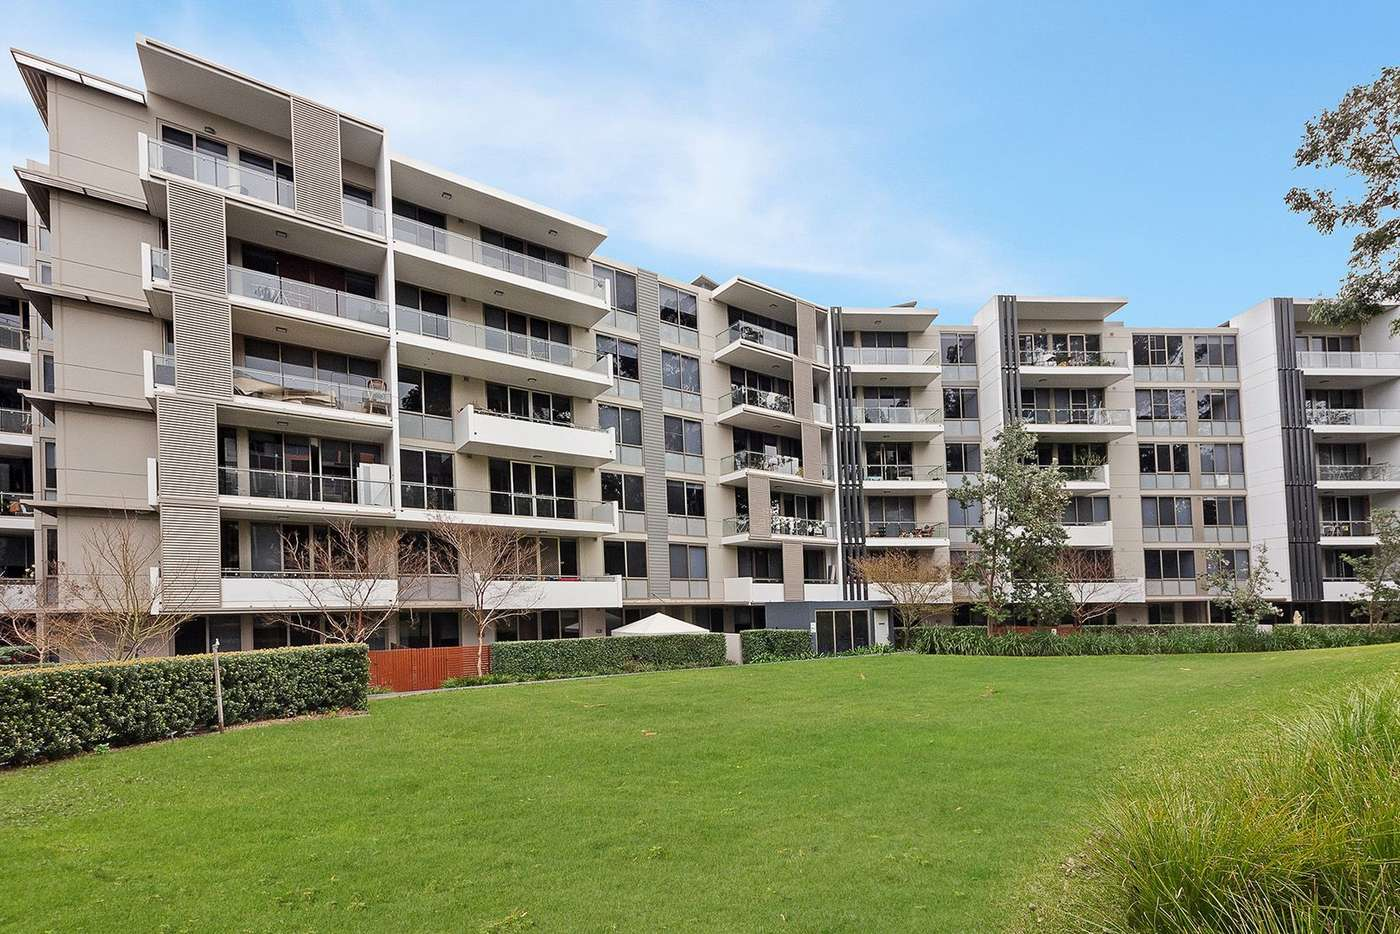 Main view of Homely apartment listing, 115/20 Epping Park Drive, Epping NSW 2121